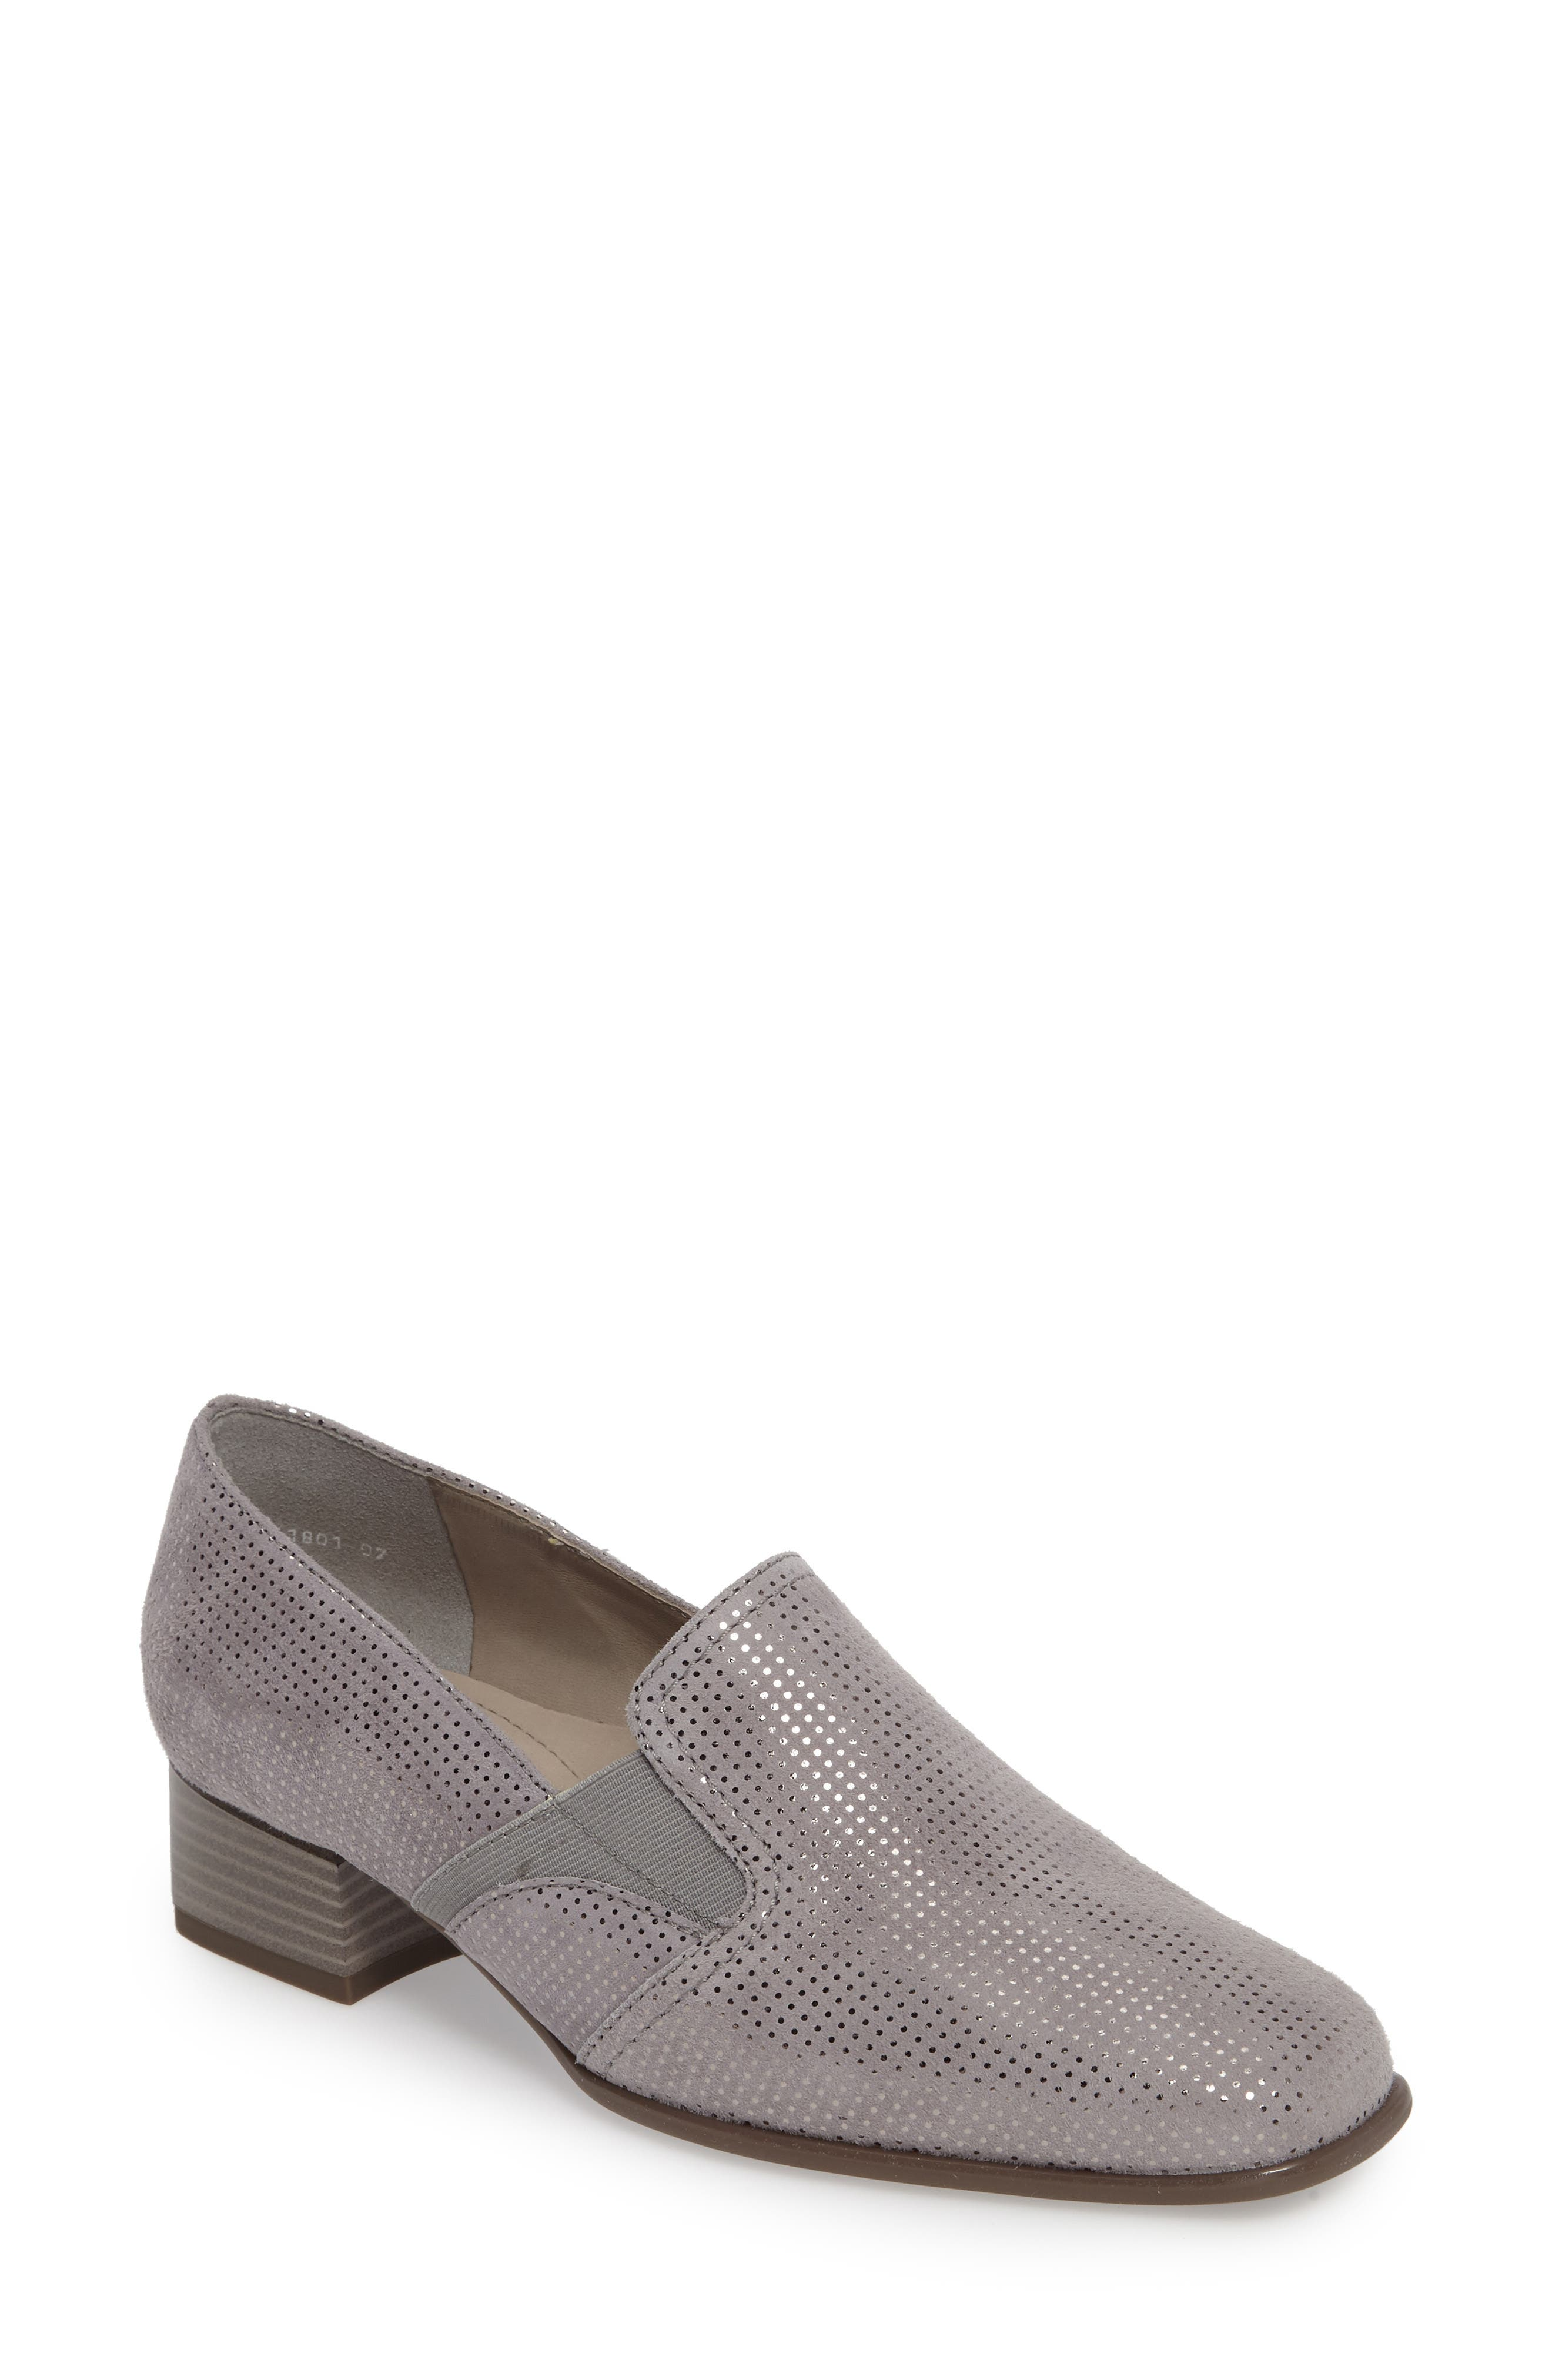 Grace Pump,                             Main thumbnail 1, color,                             GREY LEATHER